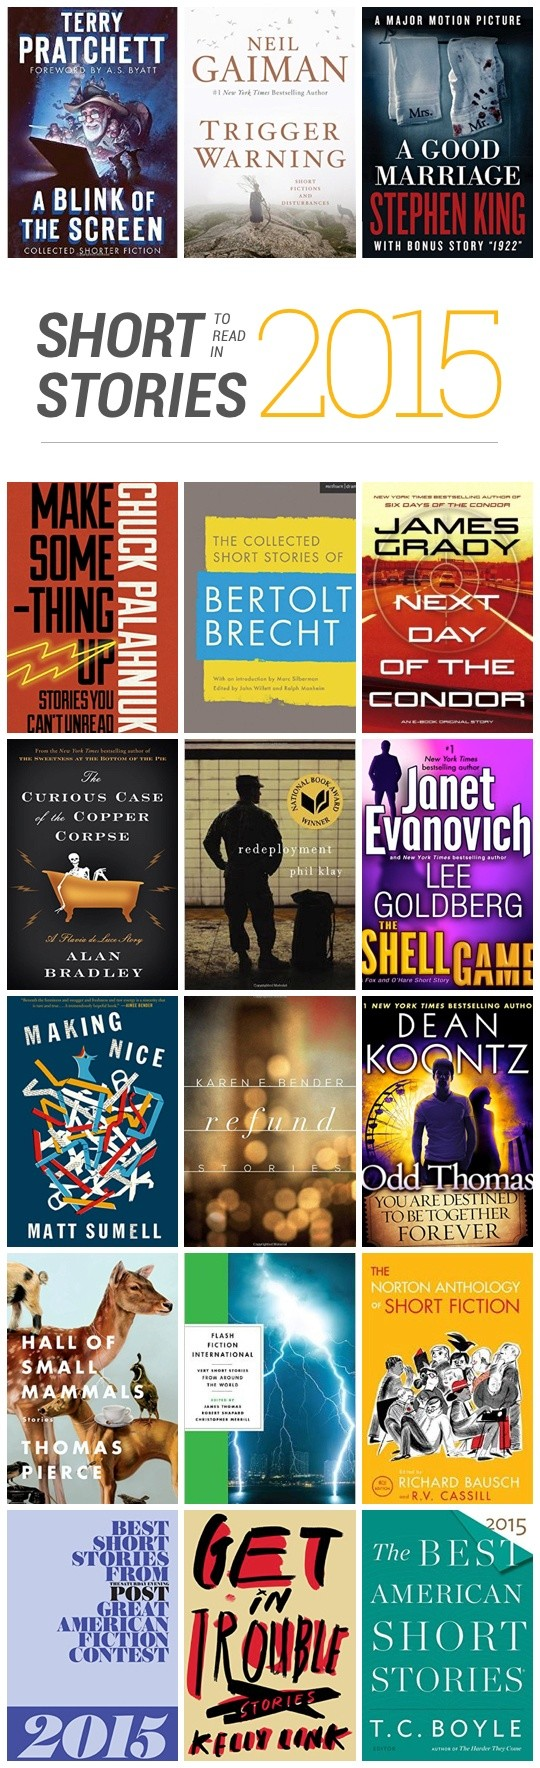 Best short stories to read in 2015 best short stories to read in 2015 infographic fandeluxe Choice Image